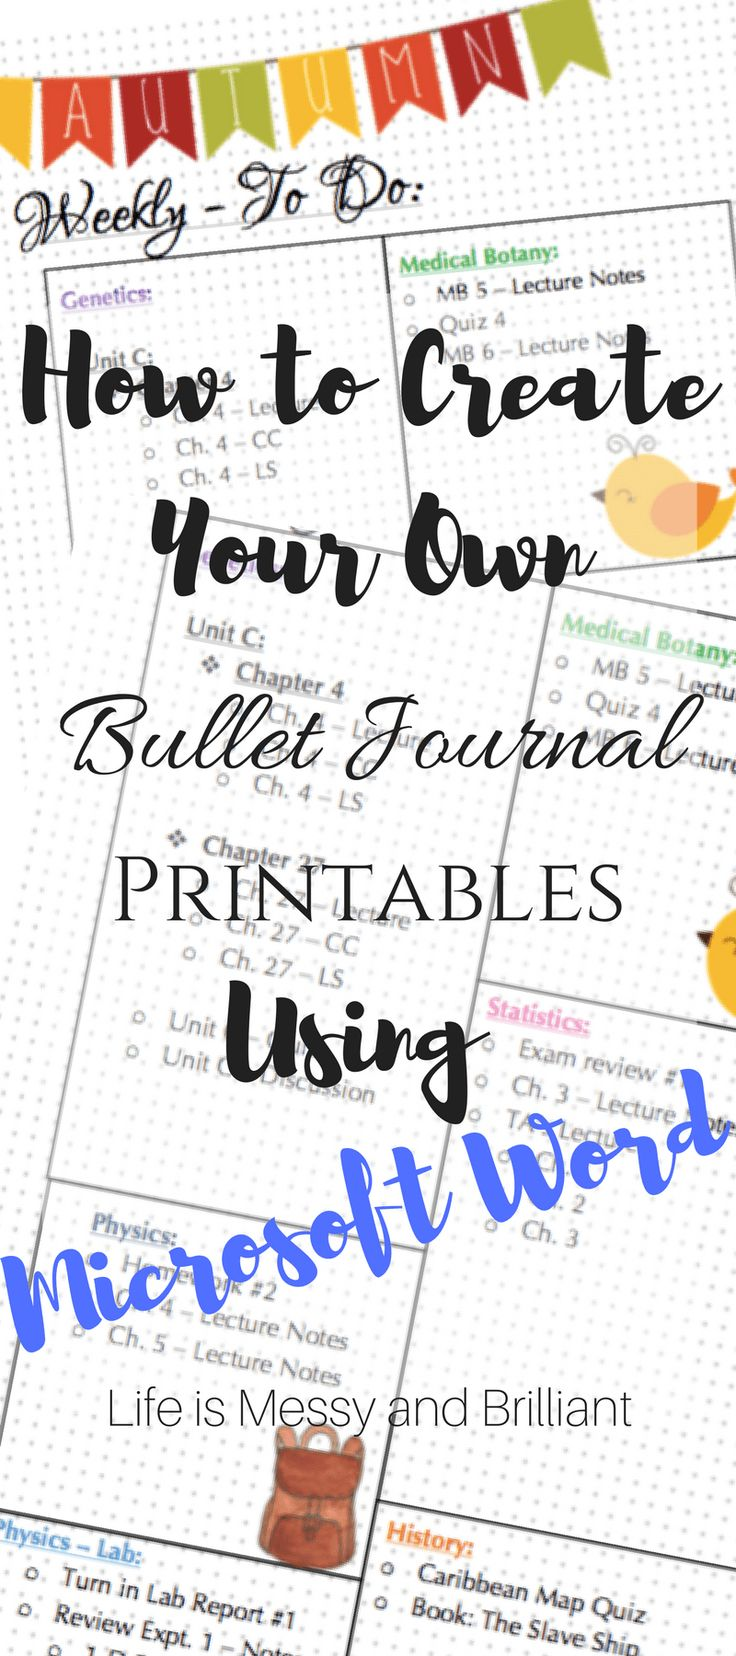 Hello, there! I have seen a lot of bullet journal printables on Pinterest butis